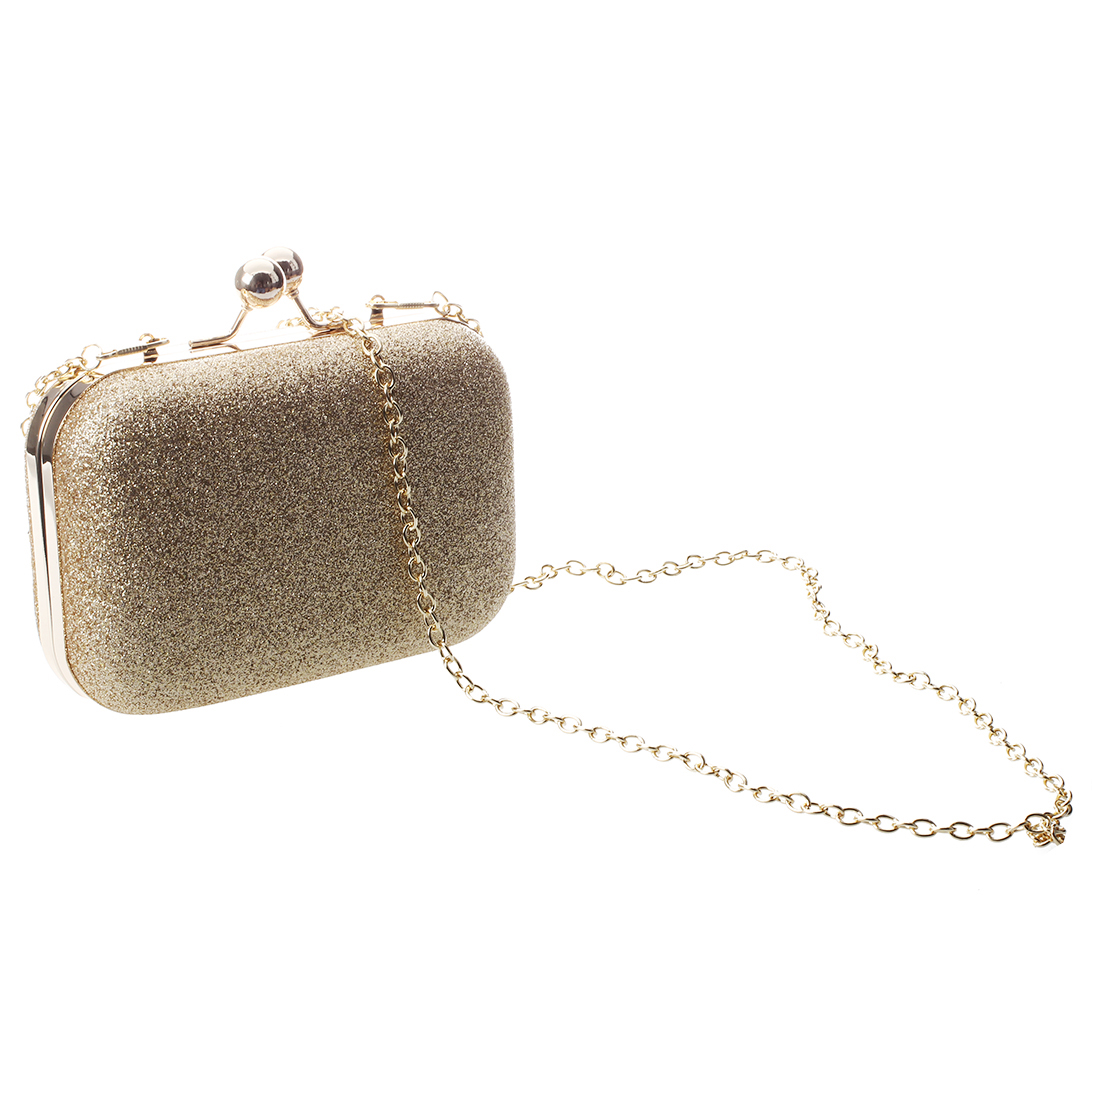 8 Pcs of (Clutch Hand Shoulder Bag Women PU Leather Shoulder Bag Gold Ball Evening Party Wedding )